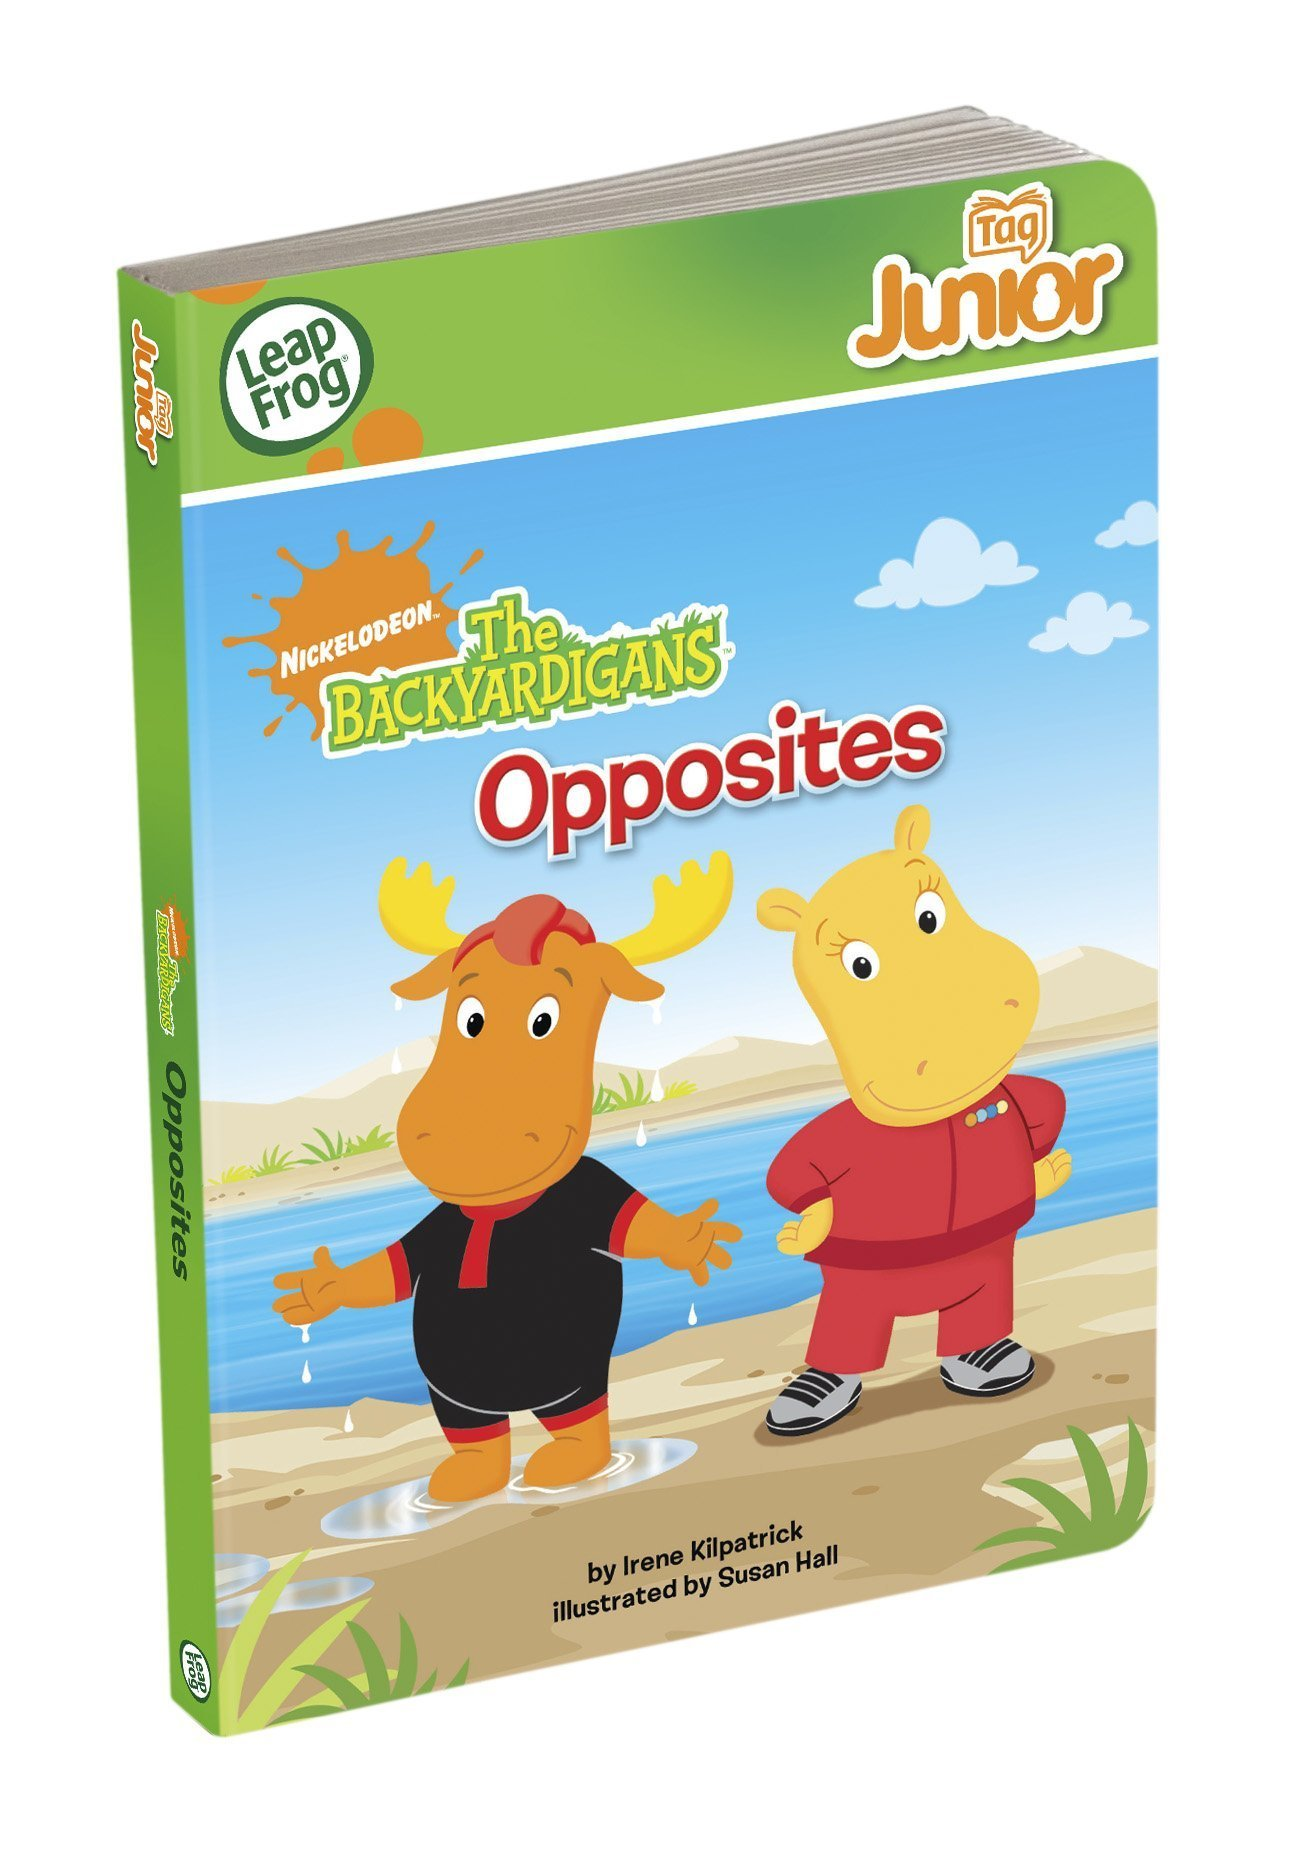 Leapfrog Tag Junior Book: The Backyardigans Opposites by Nickelodeon (Image #1)